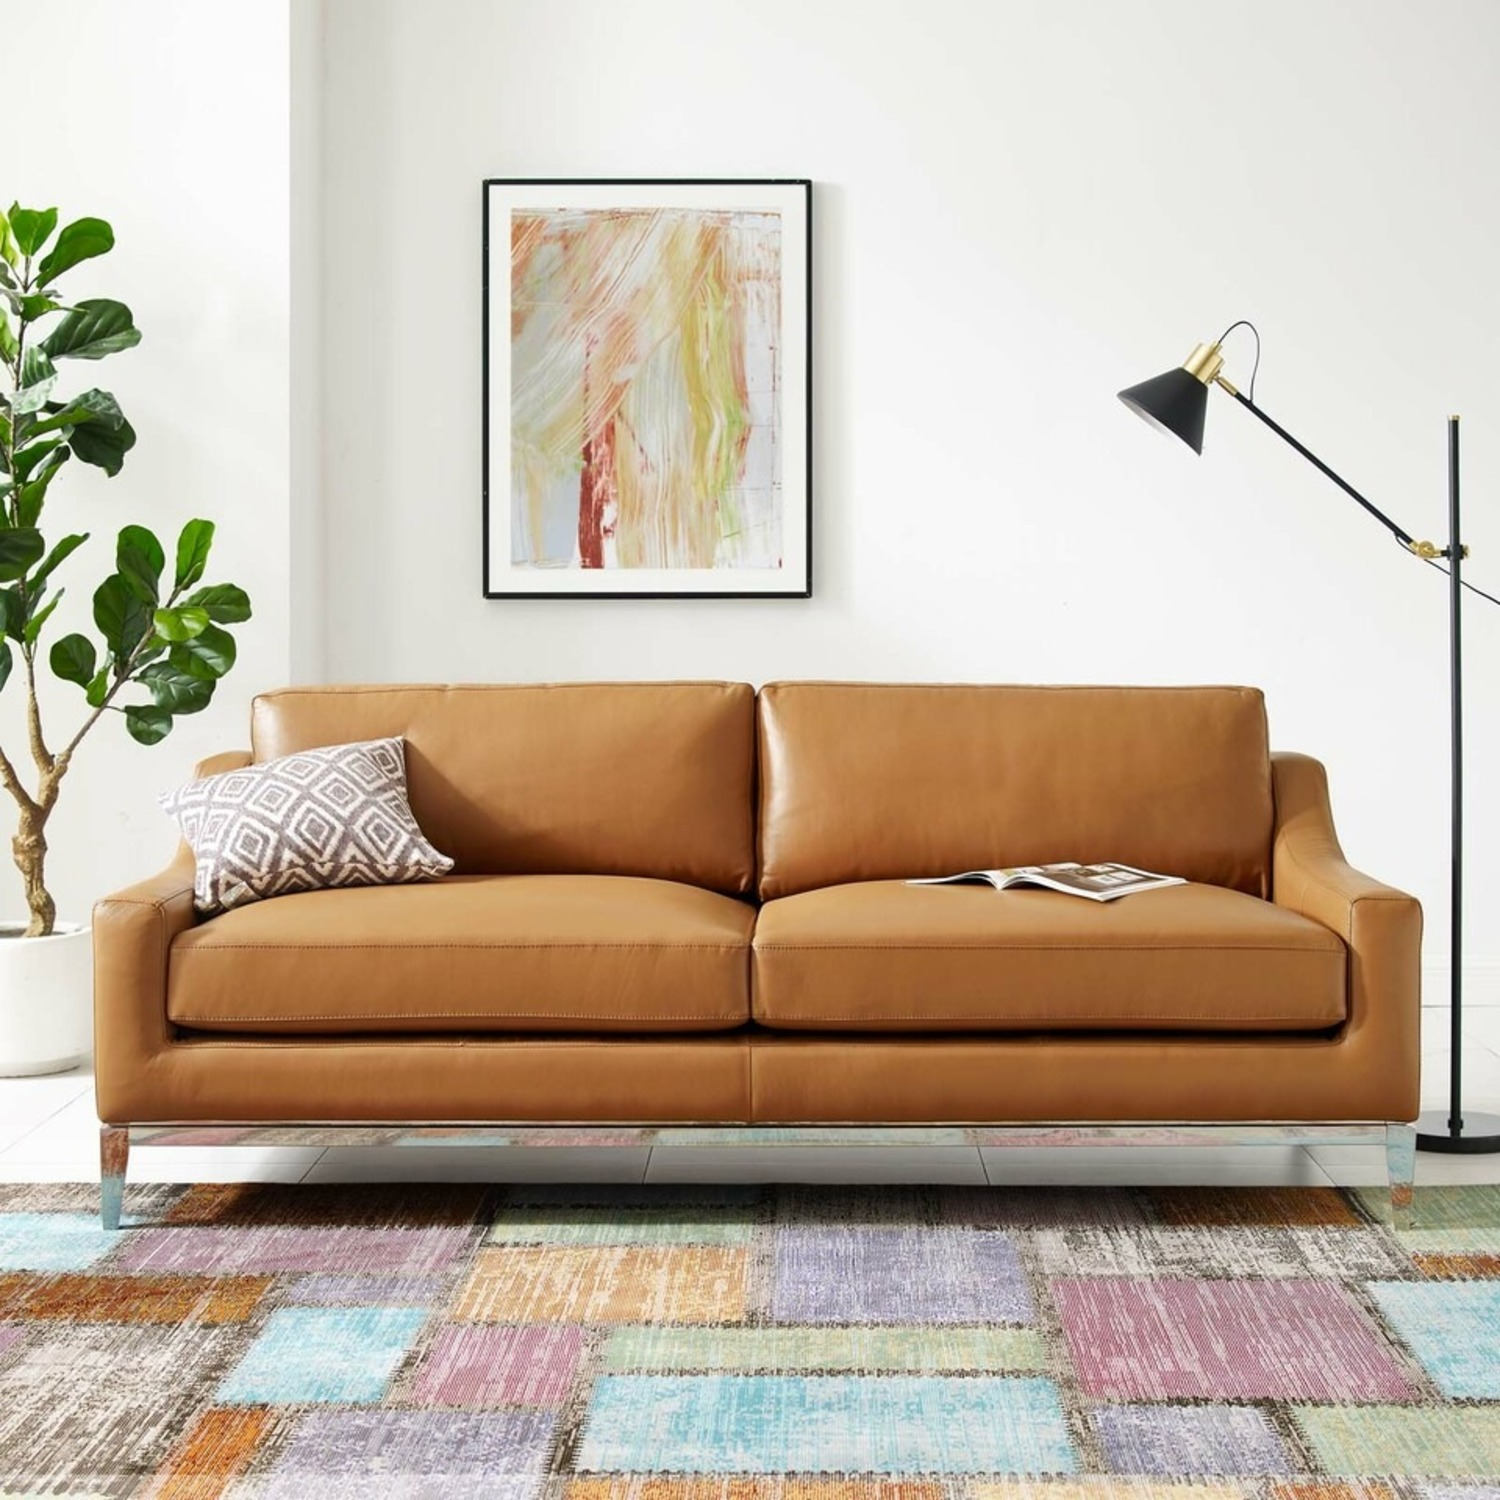 Sofa In Tan Leather Upholstery W/ Steel Base - image-7